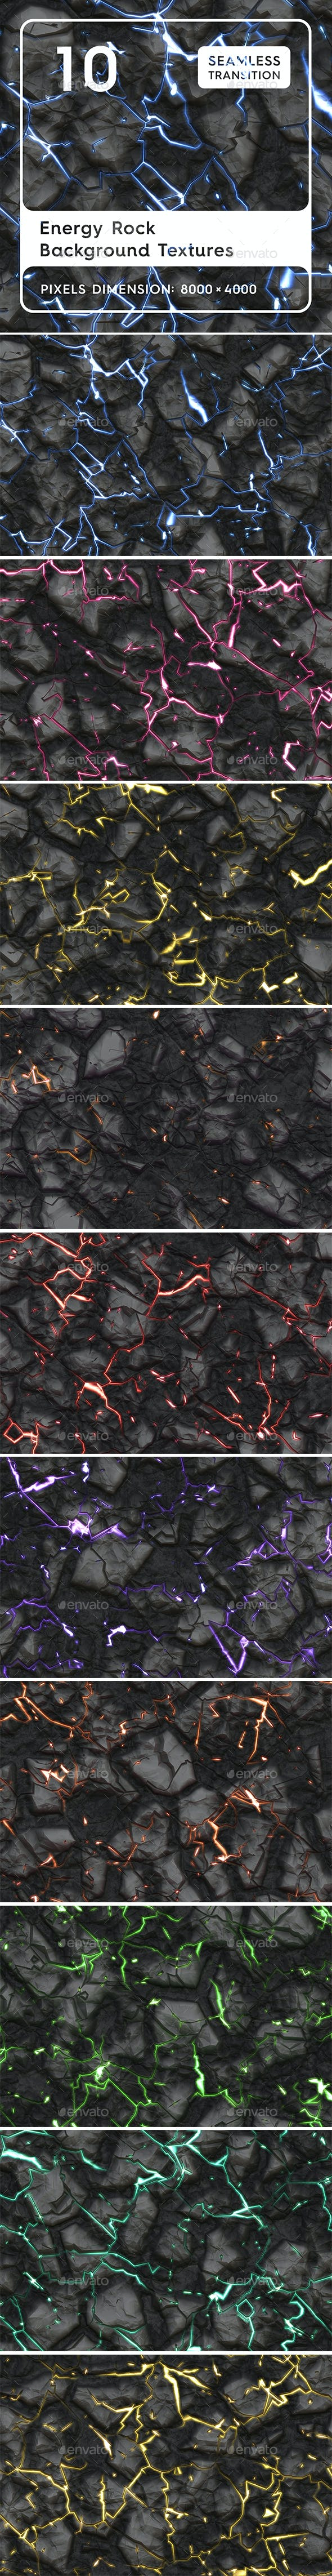 10 Energy Rock Background Textures. Seamless Transition. - 3DOcean Item for Sale